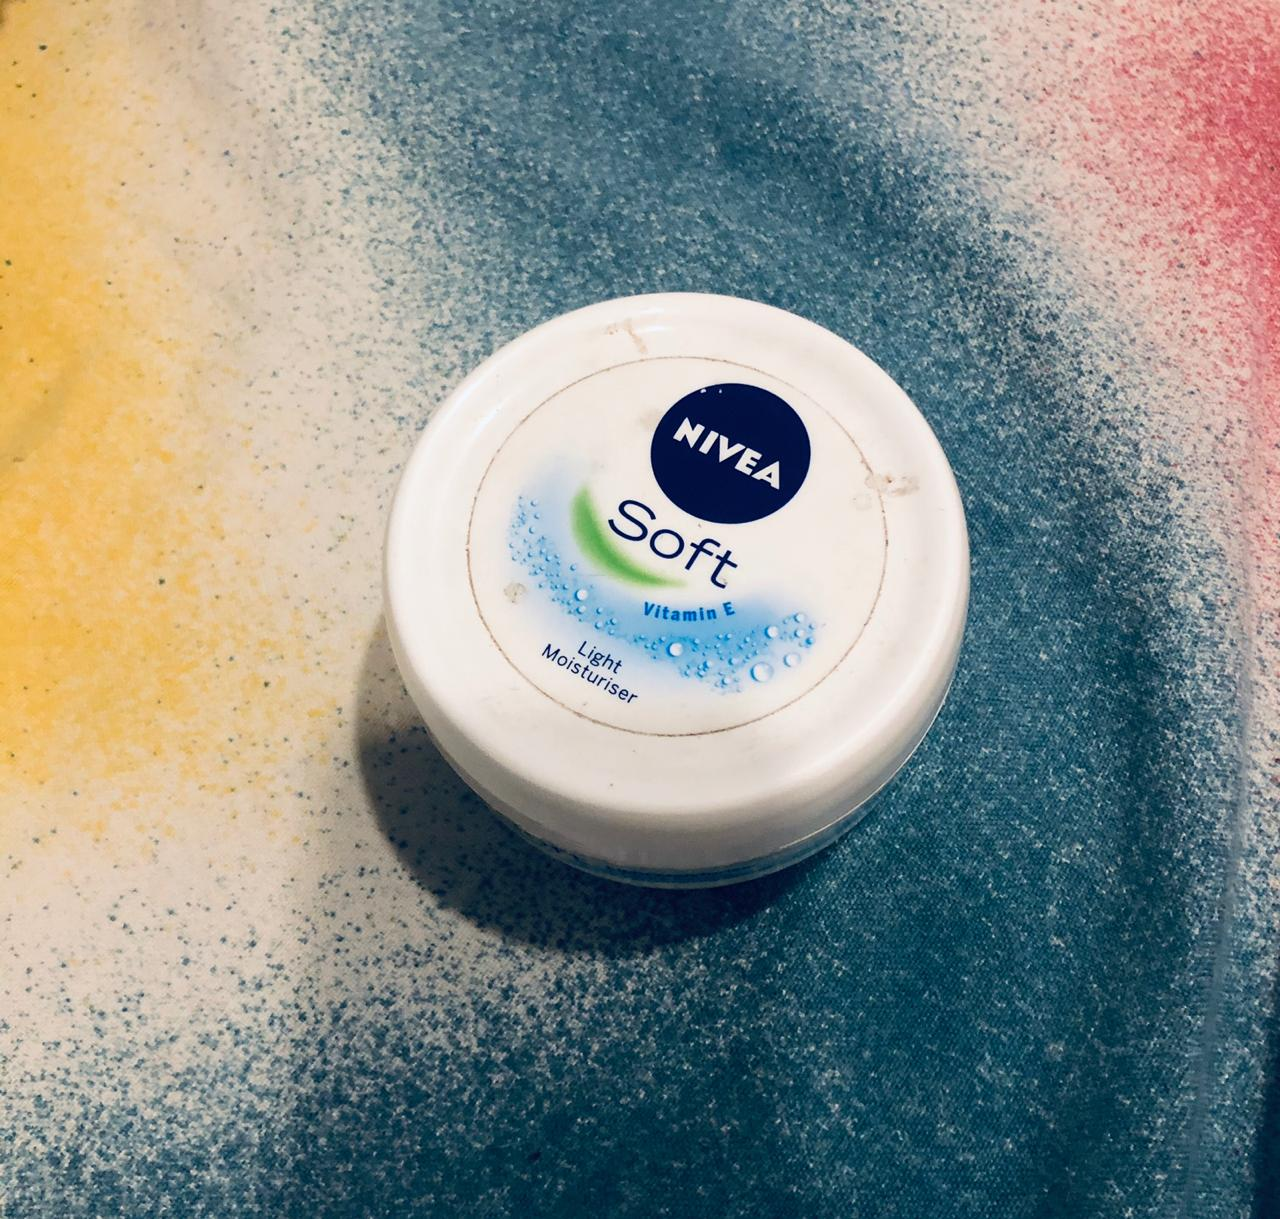 Nivea Soft Light Moisturiser-Any season this is the one-By ayushi_kejriwal